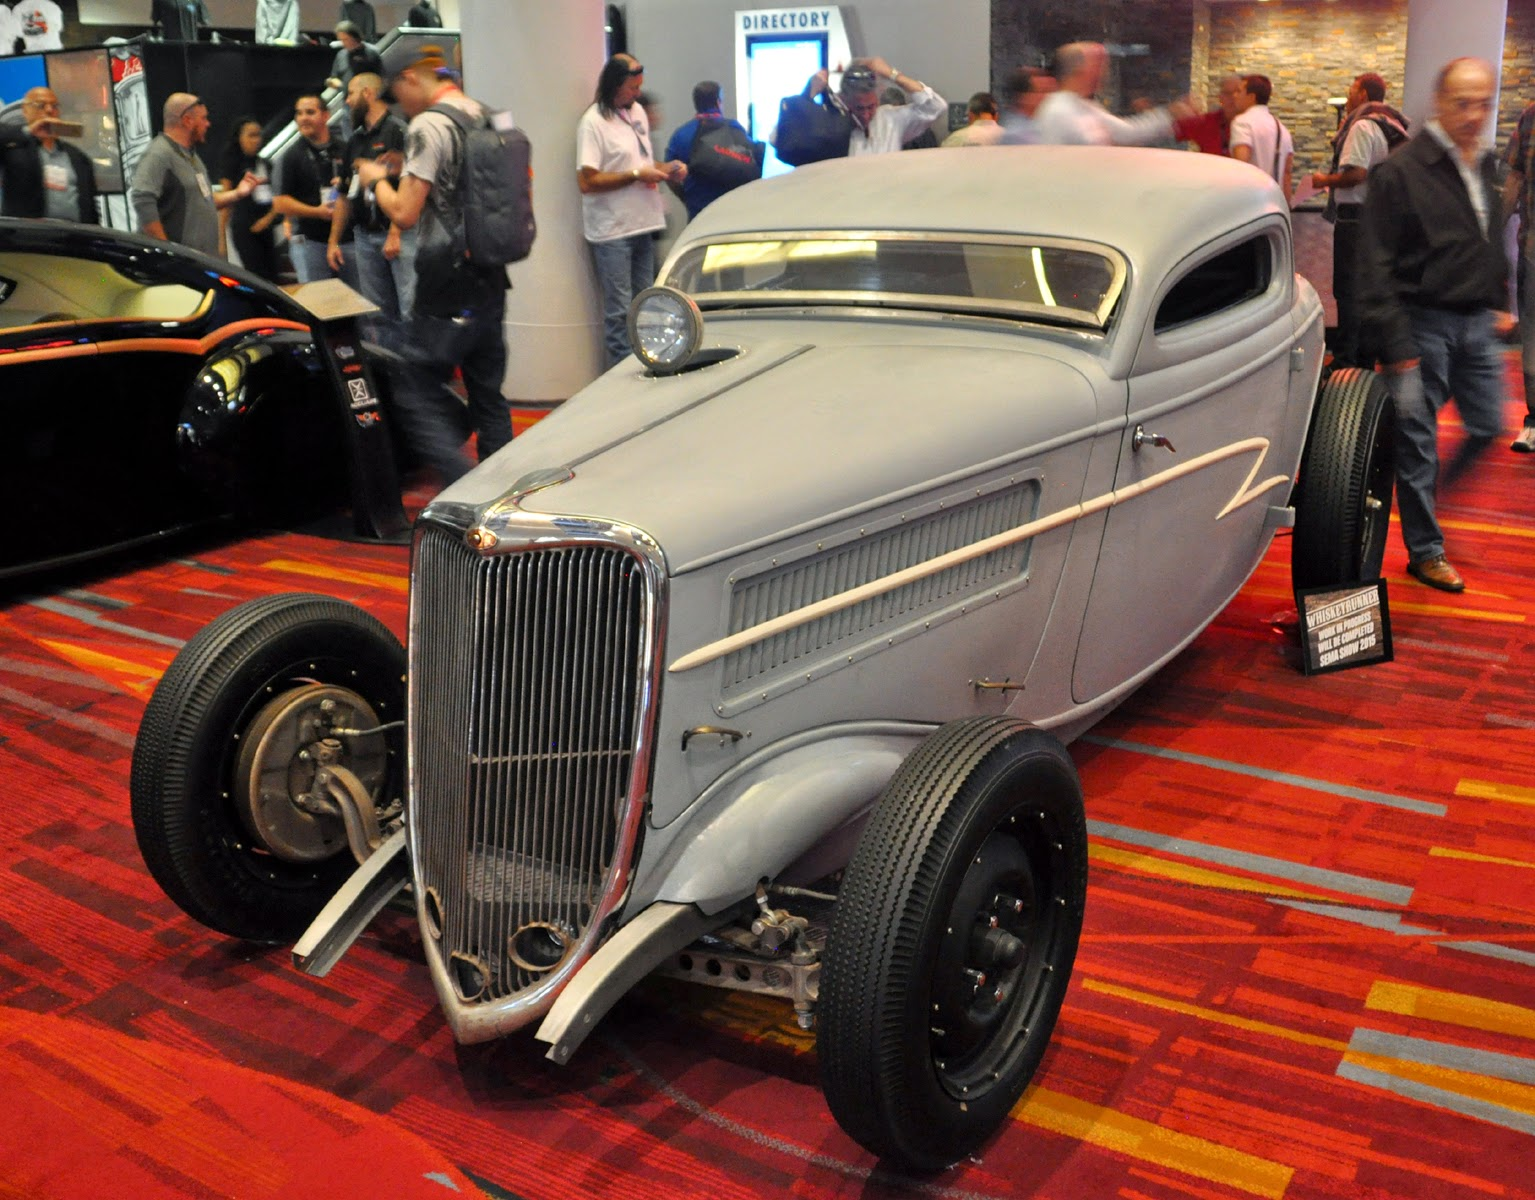 Just A Car Guy: the latest Hot Rod of Billy Gibbons